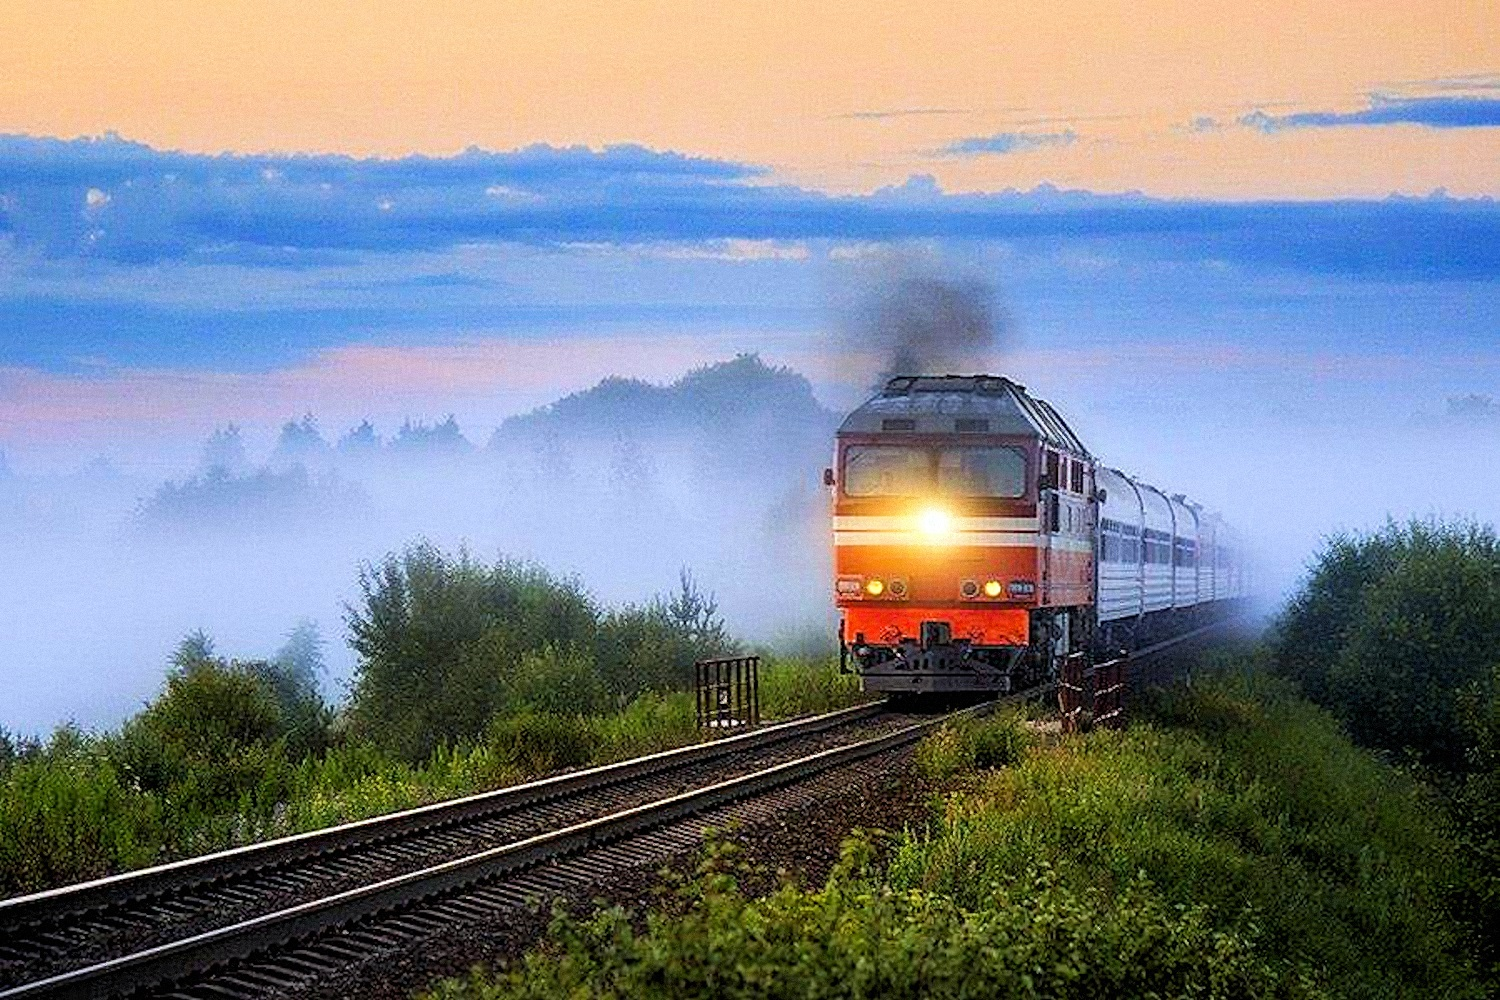 00 Ilya Semyonov. Diesel Locomotive TEP70 Driving Ivanovo-St Petersburg Passenger Train at Udomlya Station in Tver Oblast. 2016